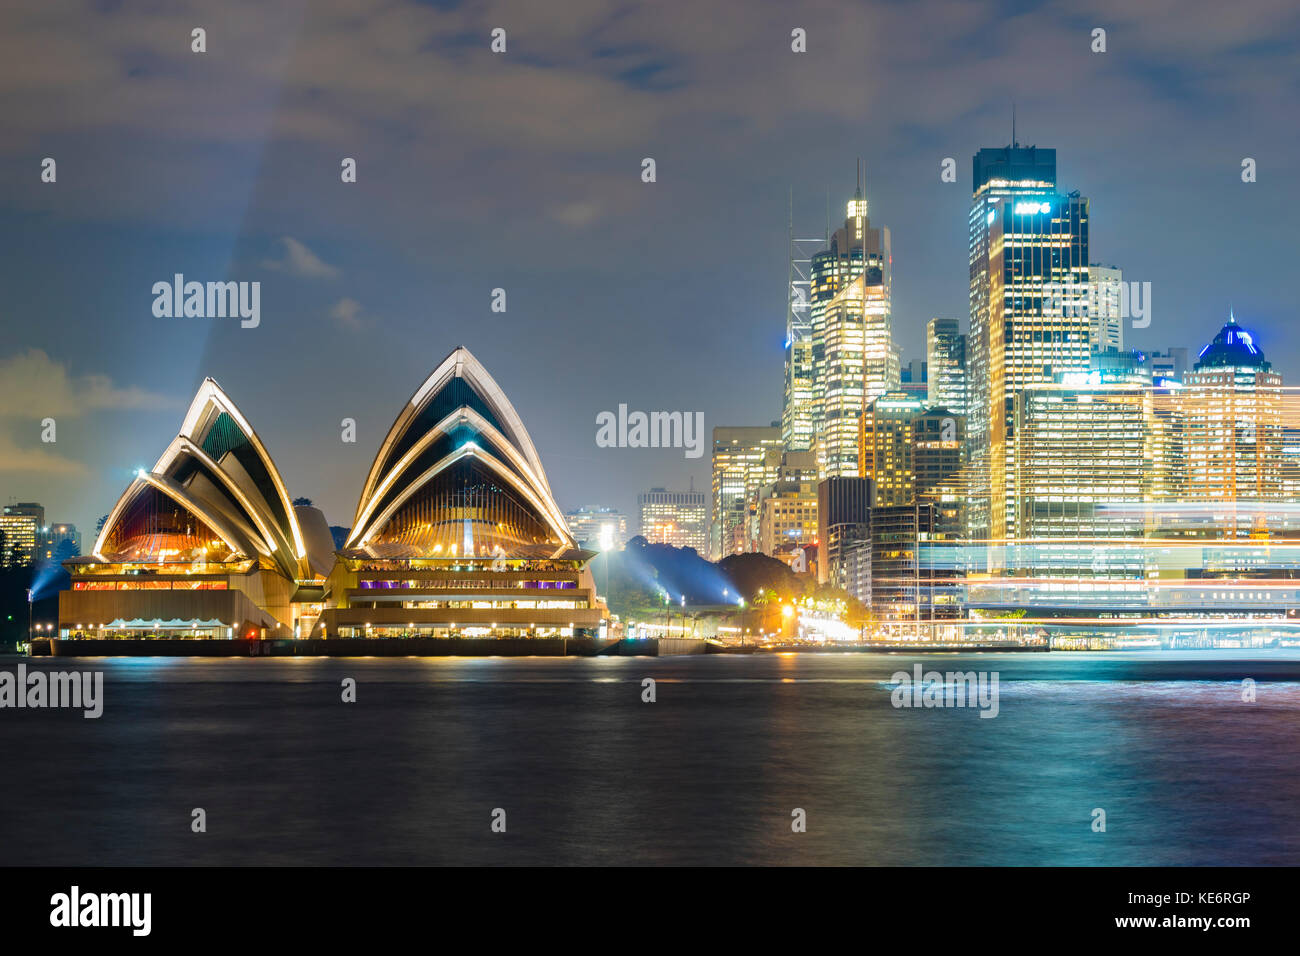 Sydney Opera House and CBD at night - Stock Image